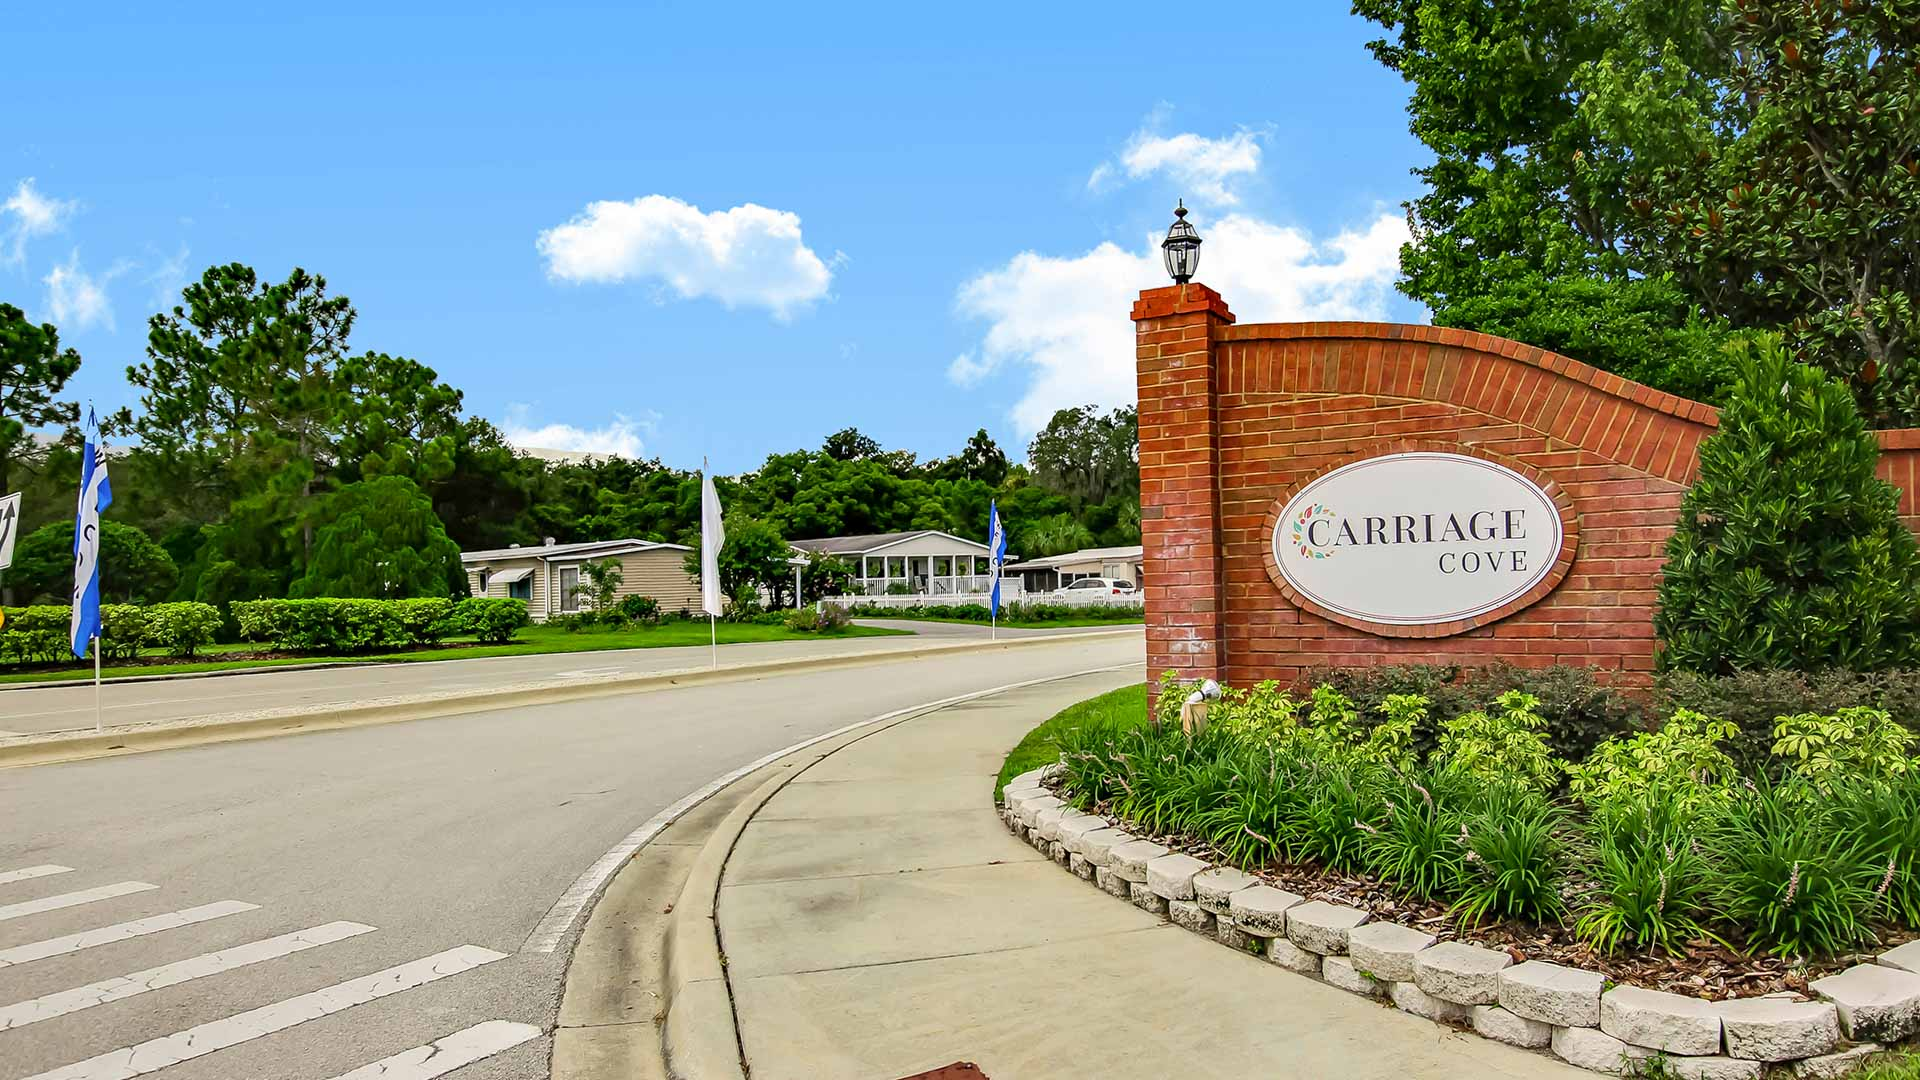 Entrance Sign at Carriage Cove Manufactured Homes Community in Sanford, FL